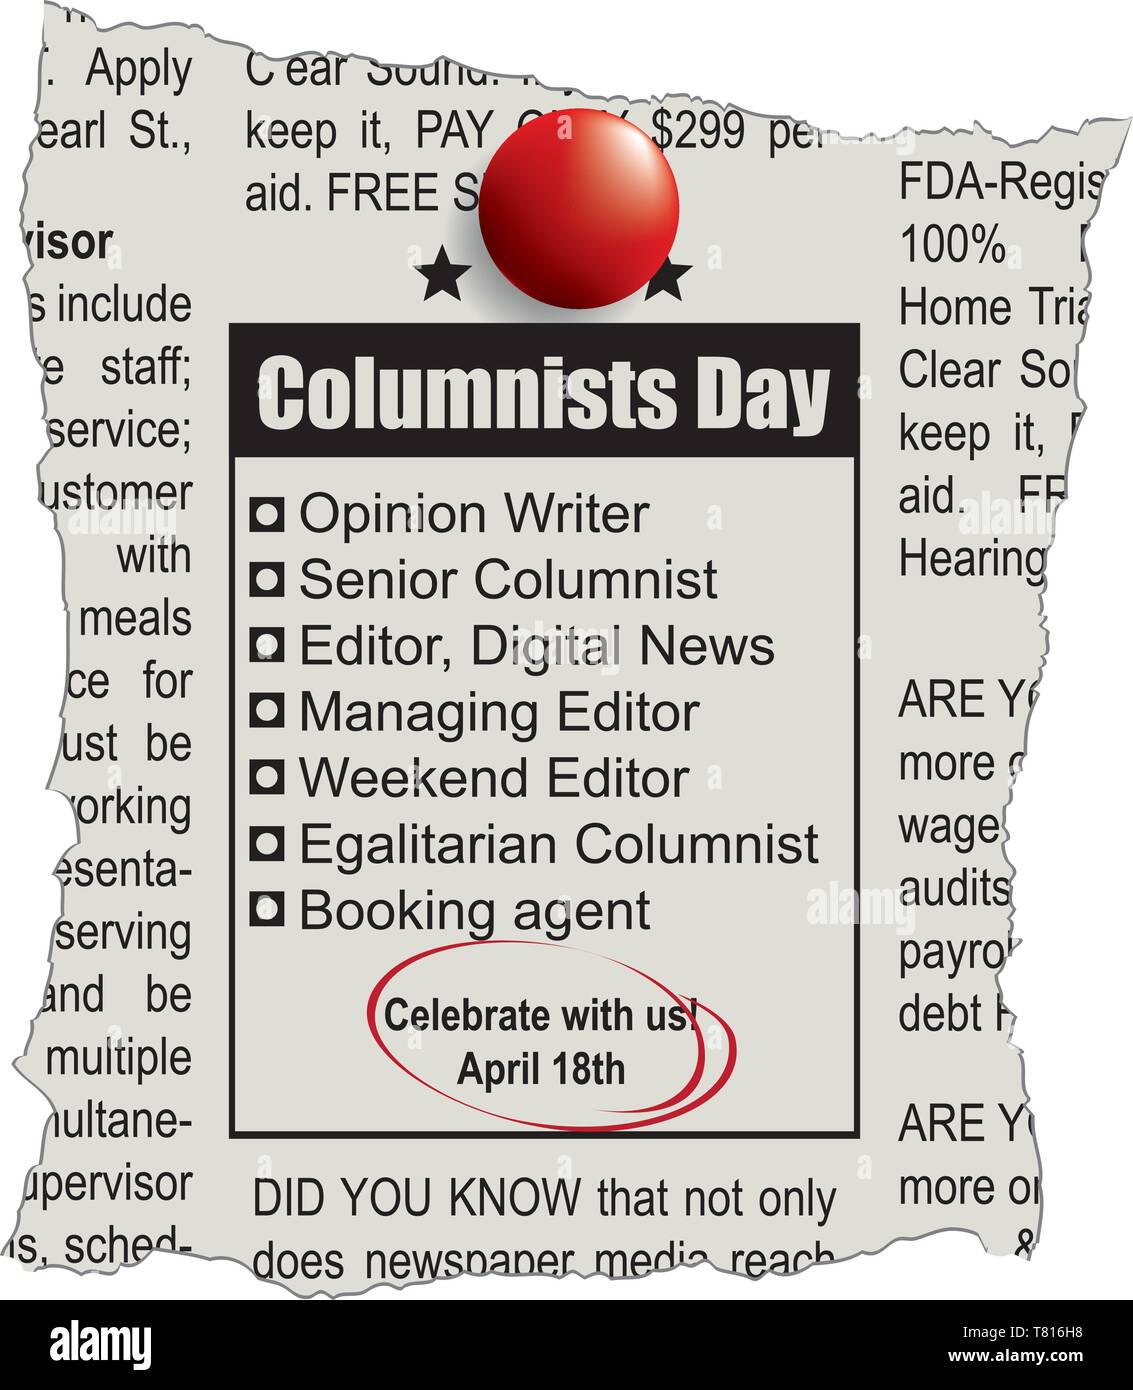 Scrap of the newspaper page with the Columnists Day Announcement - Stock Vector